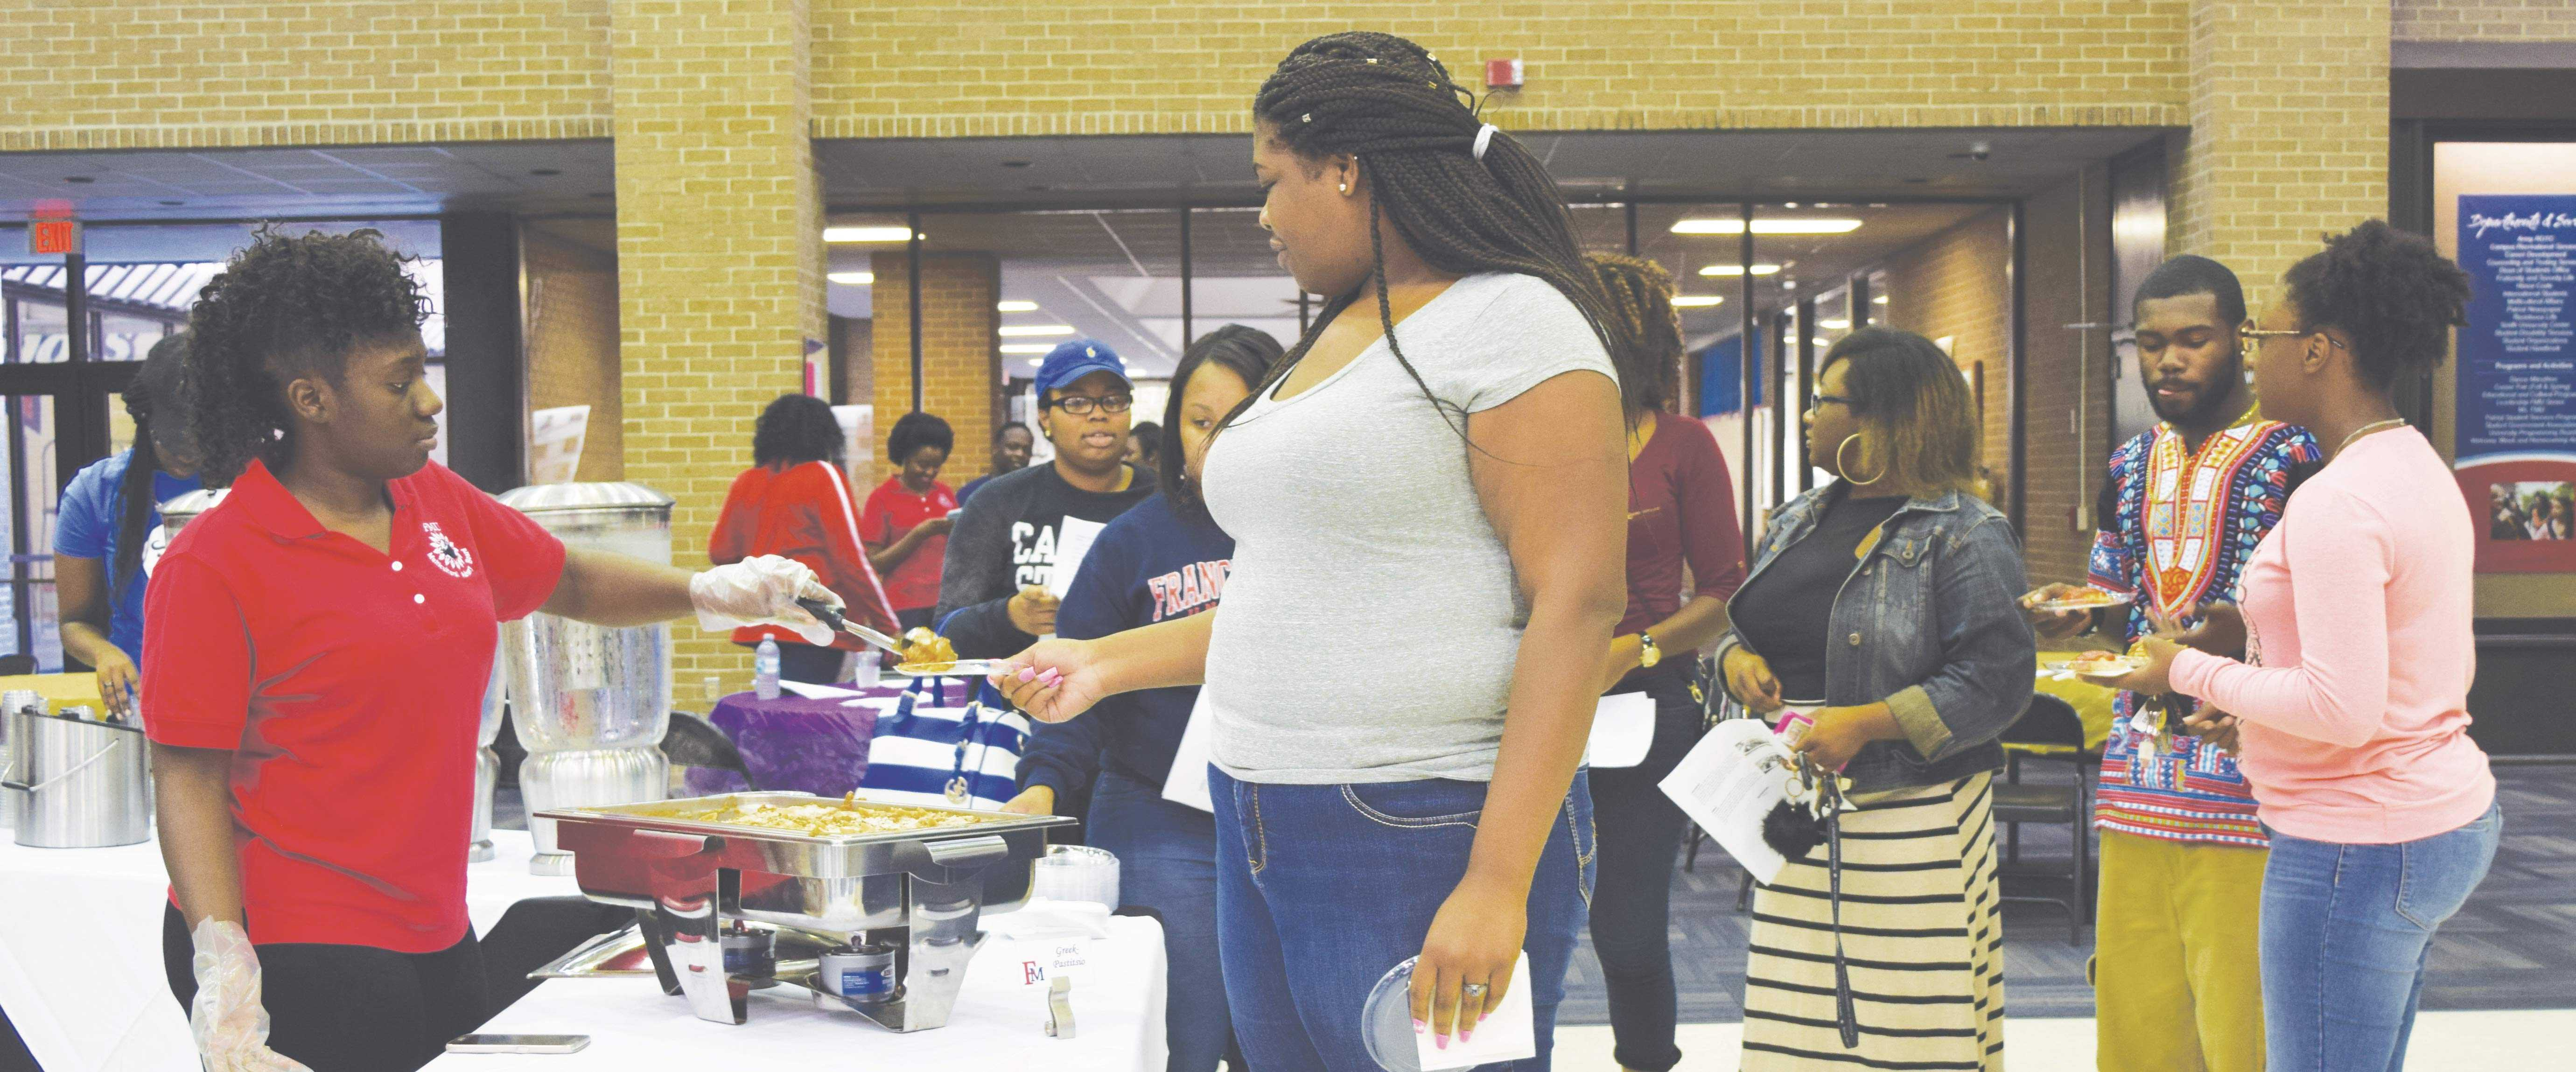 Students try international dishes at the Cultural Food Fest. The dishes' recipes, which came from countries such as Greece, Brazil and Jamaica, were made available at the event.